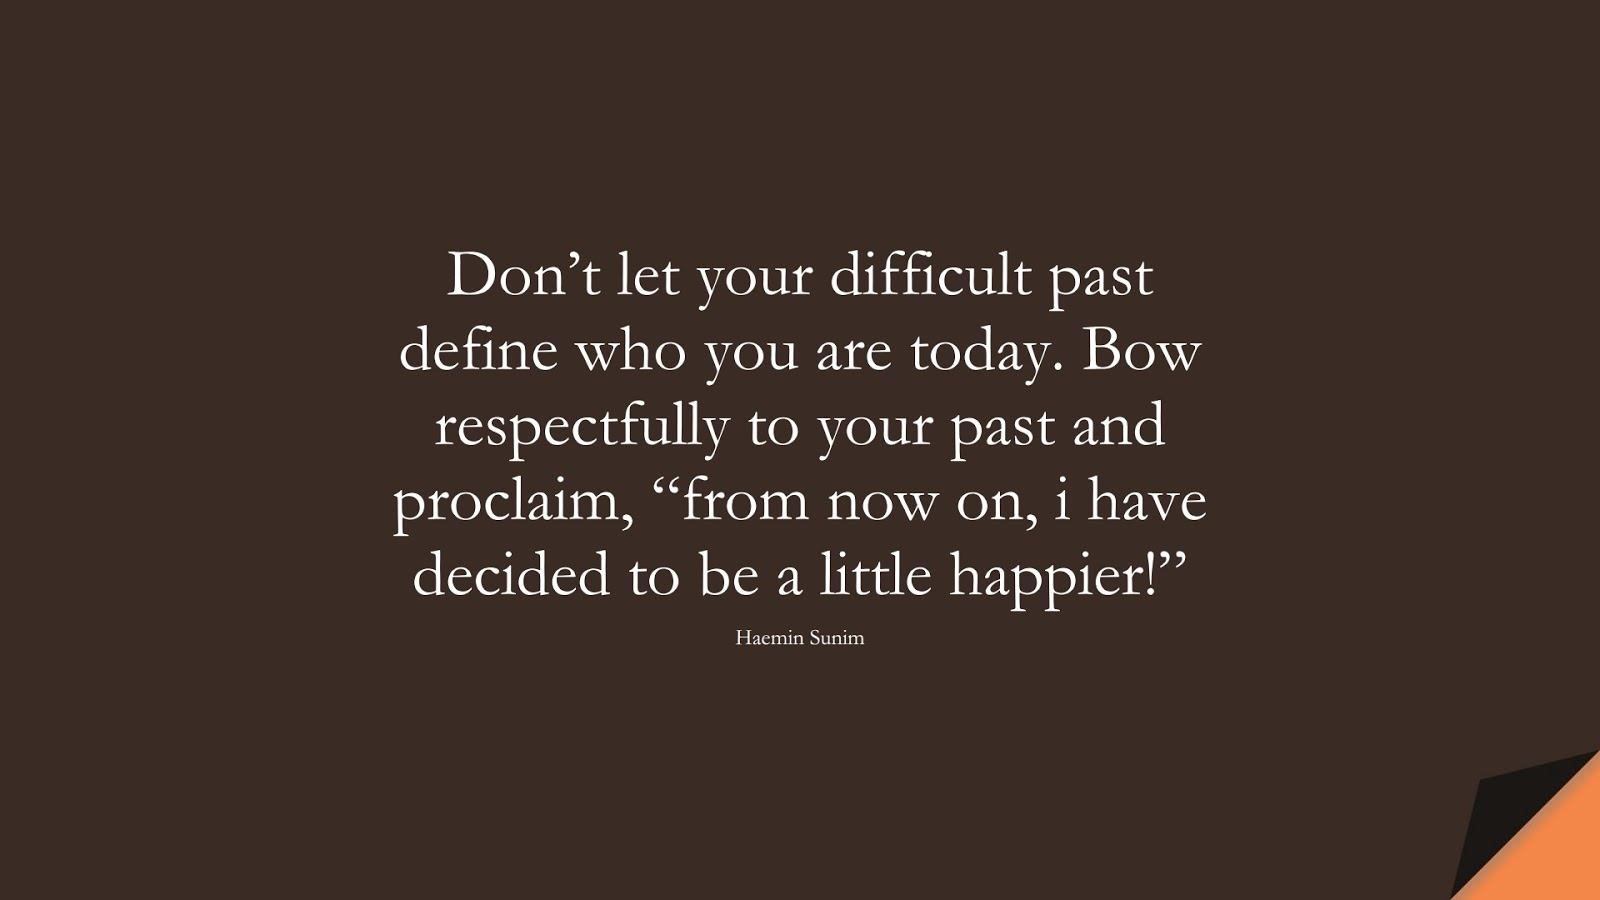 """Don't let your difficult past define who you are today. Bow respectfully to your past and proclaim, """"from now on, i have decided to be a little happier!"""" (Haemin Sunim);  #DepressionQuotes"""